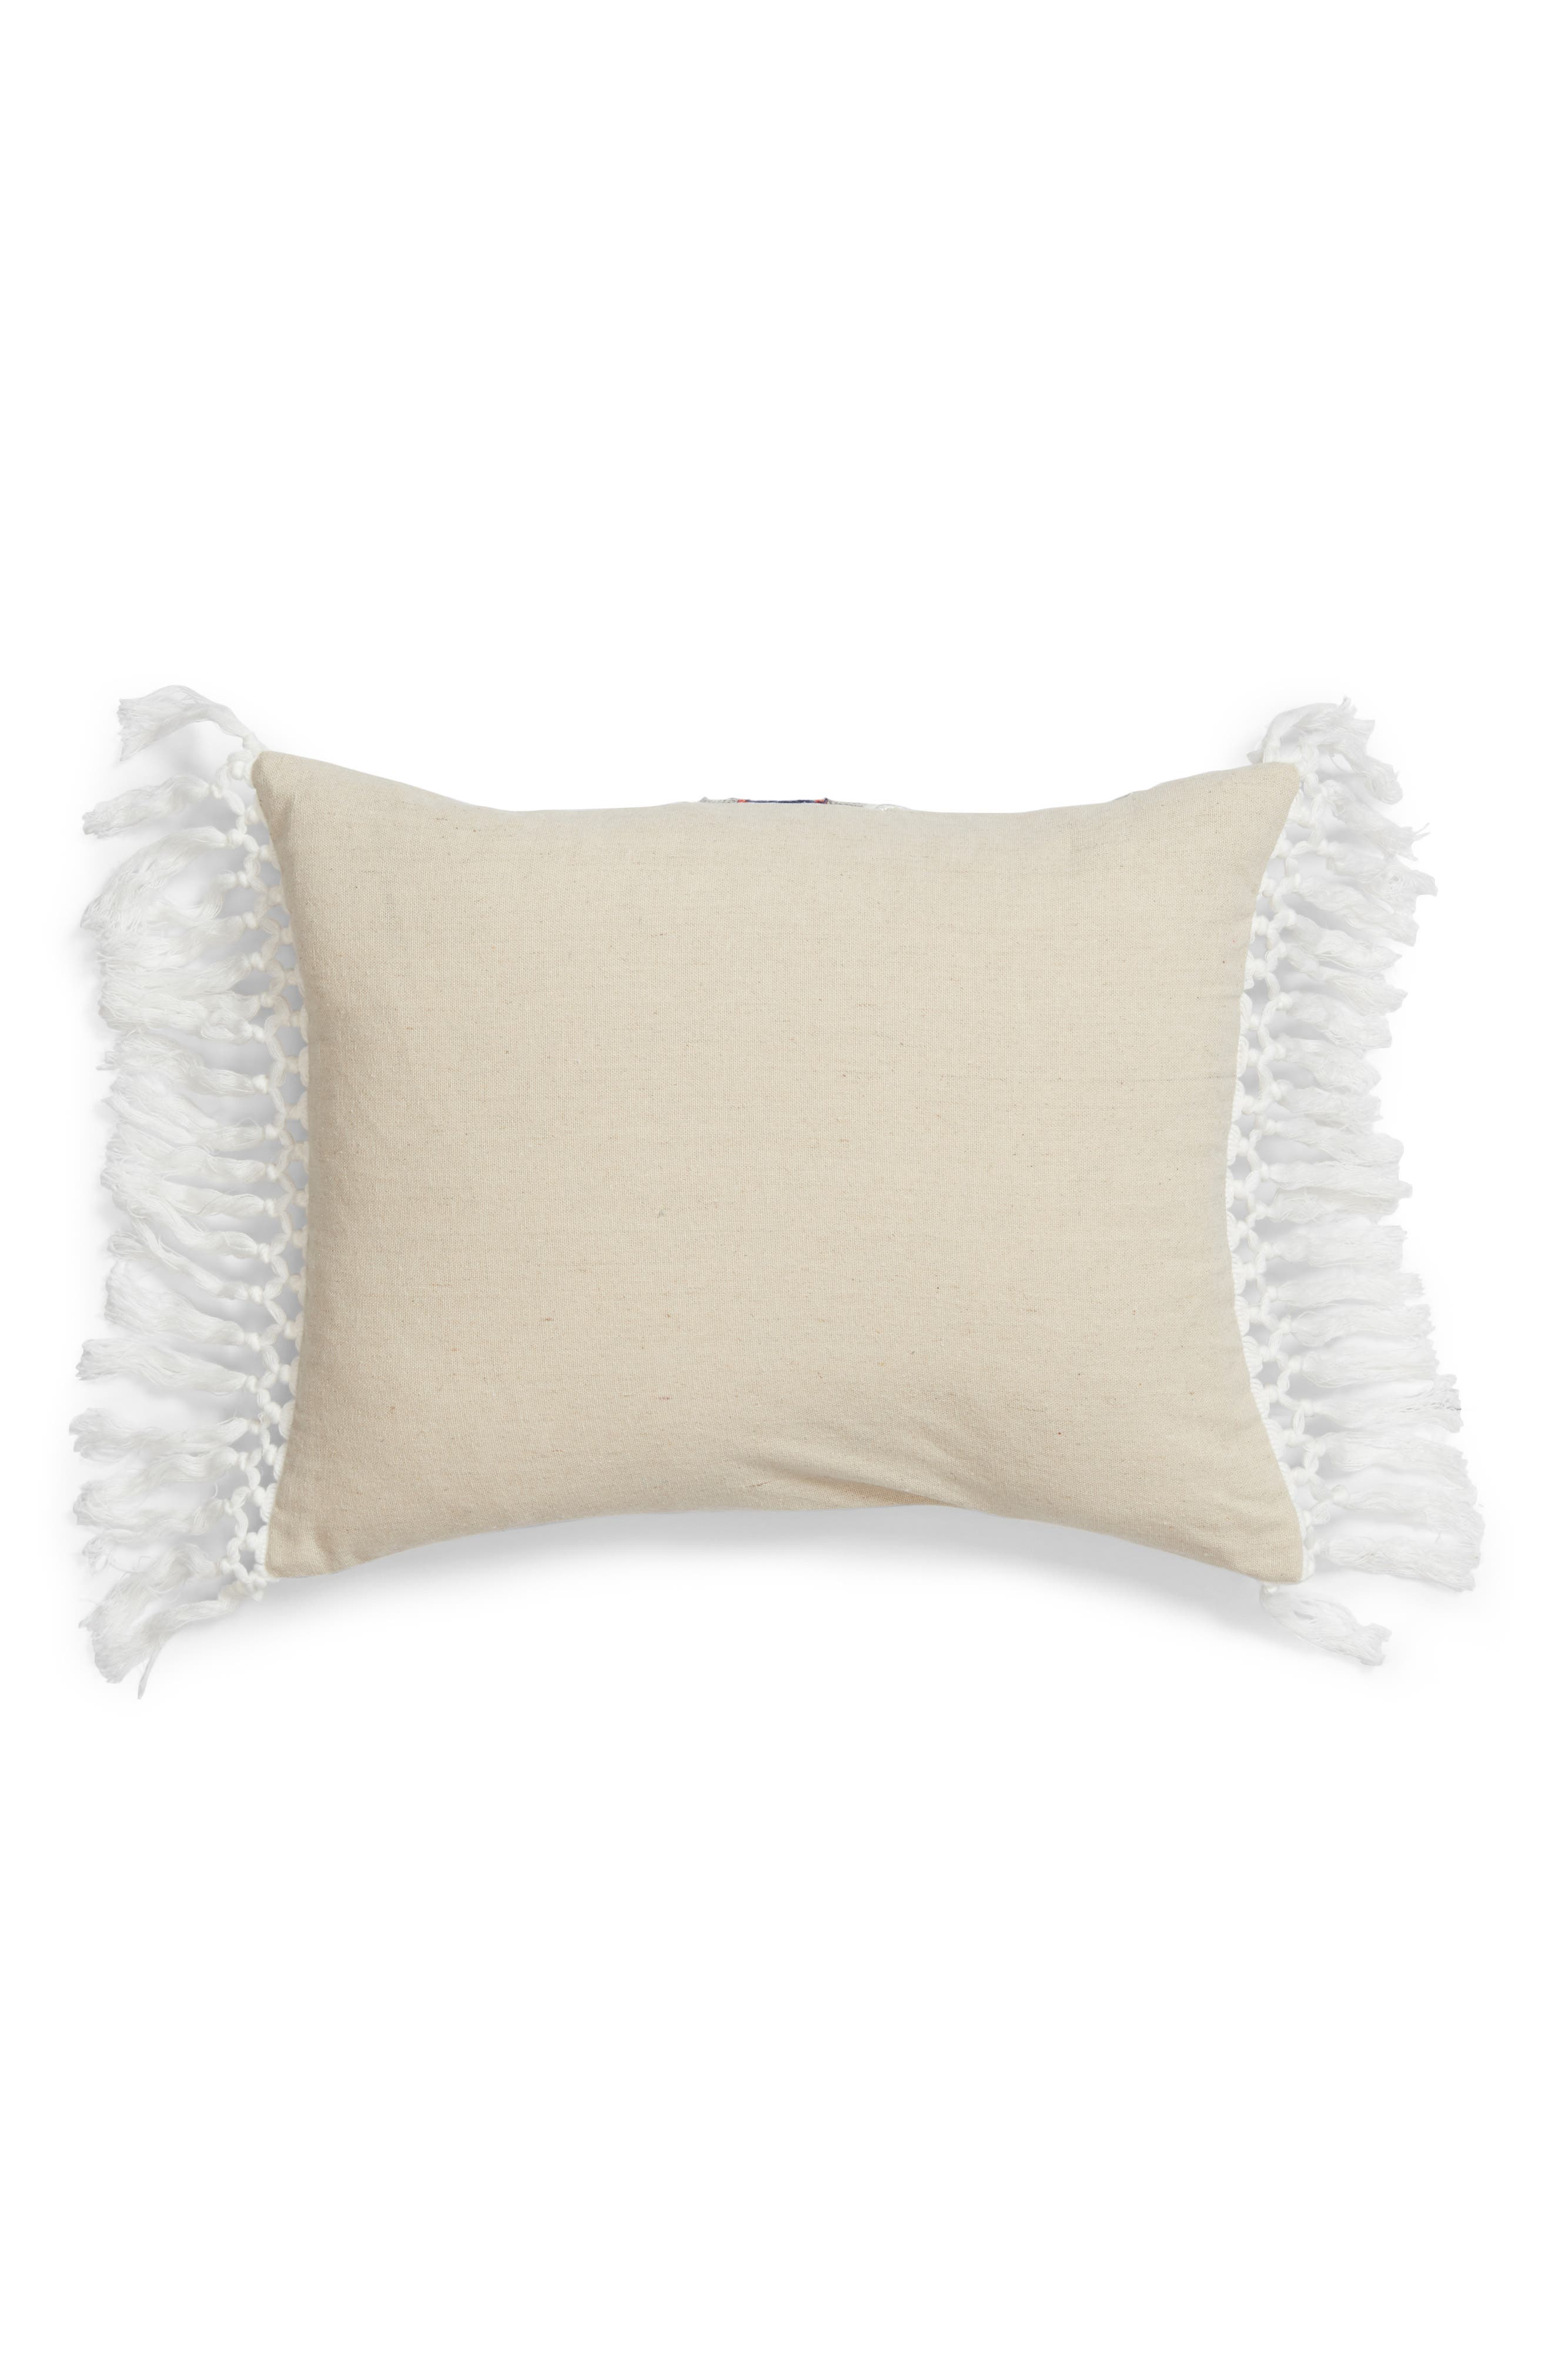 Reya Embroidered Accent Pillow,                             Alternate thumbnail 2, color,                             900